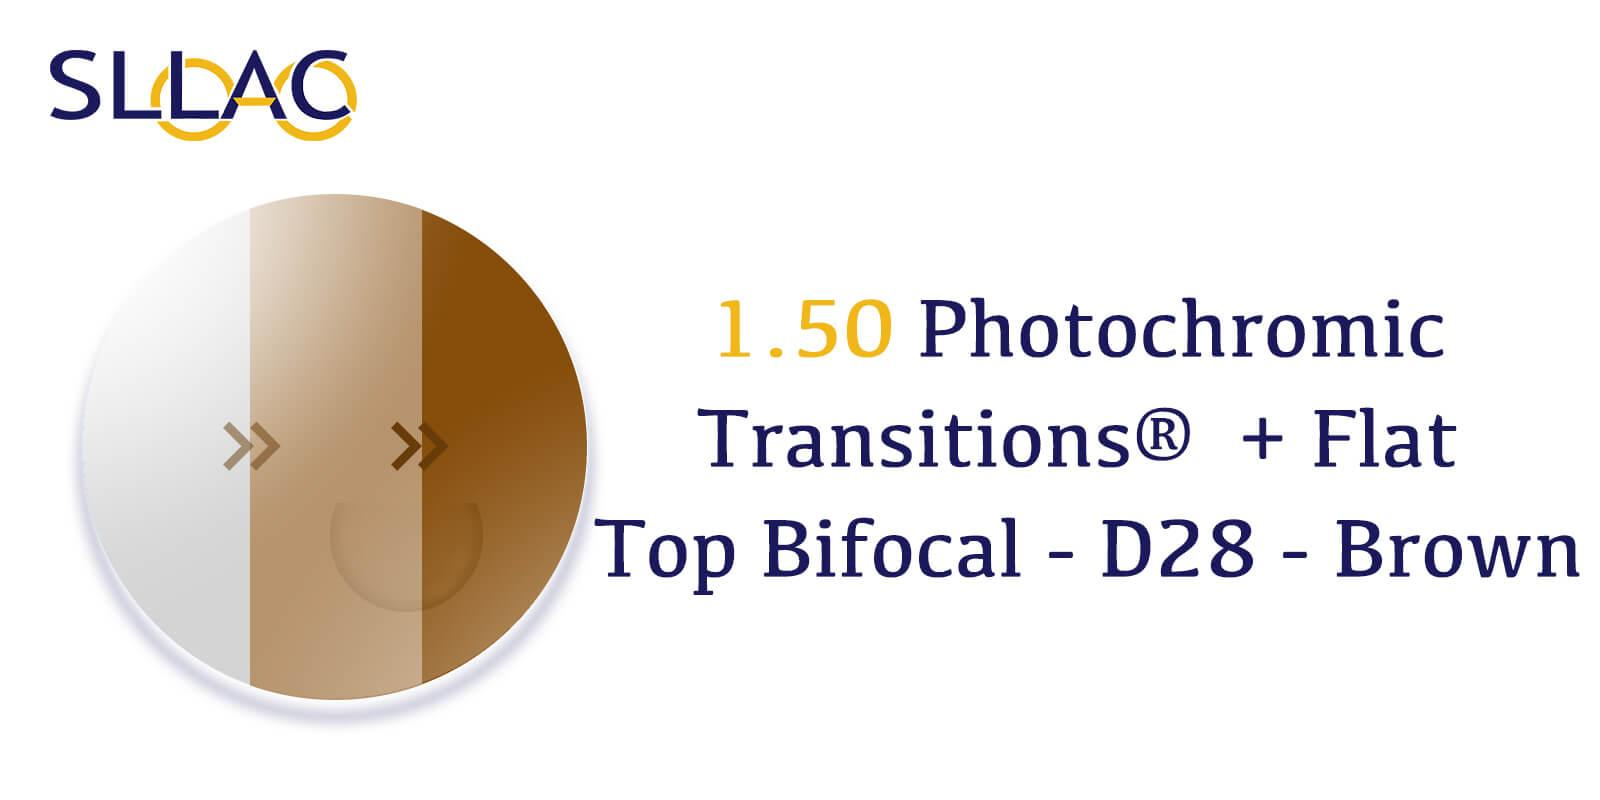 1.50 Photochromic Transitions®  + Flat Top Bifocal - D28 - Brown-Brown---Eyeglasses-detail